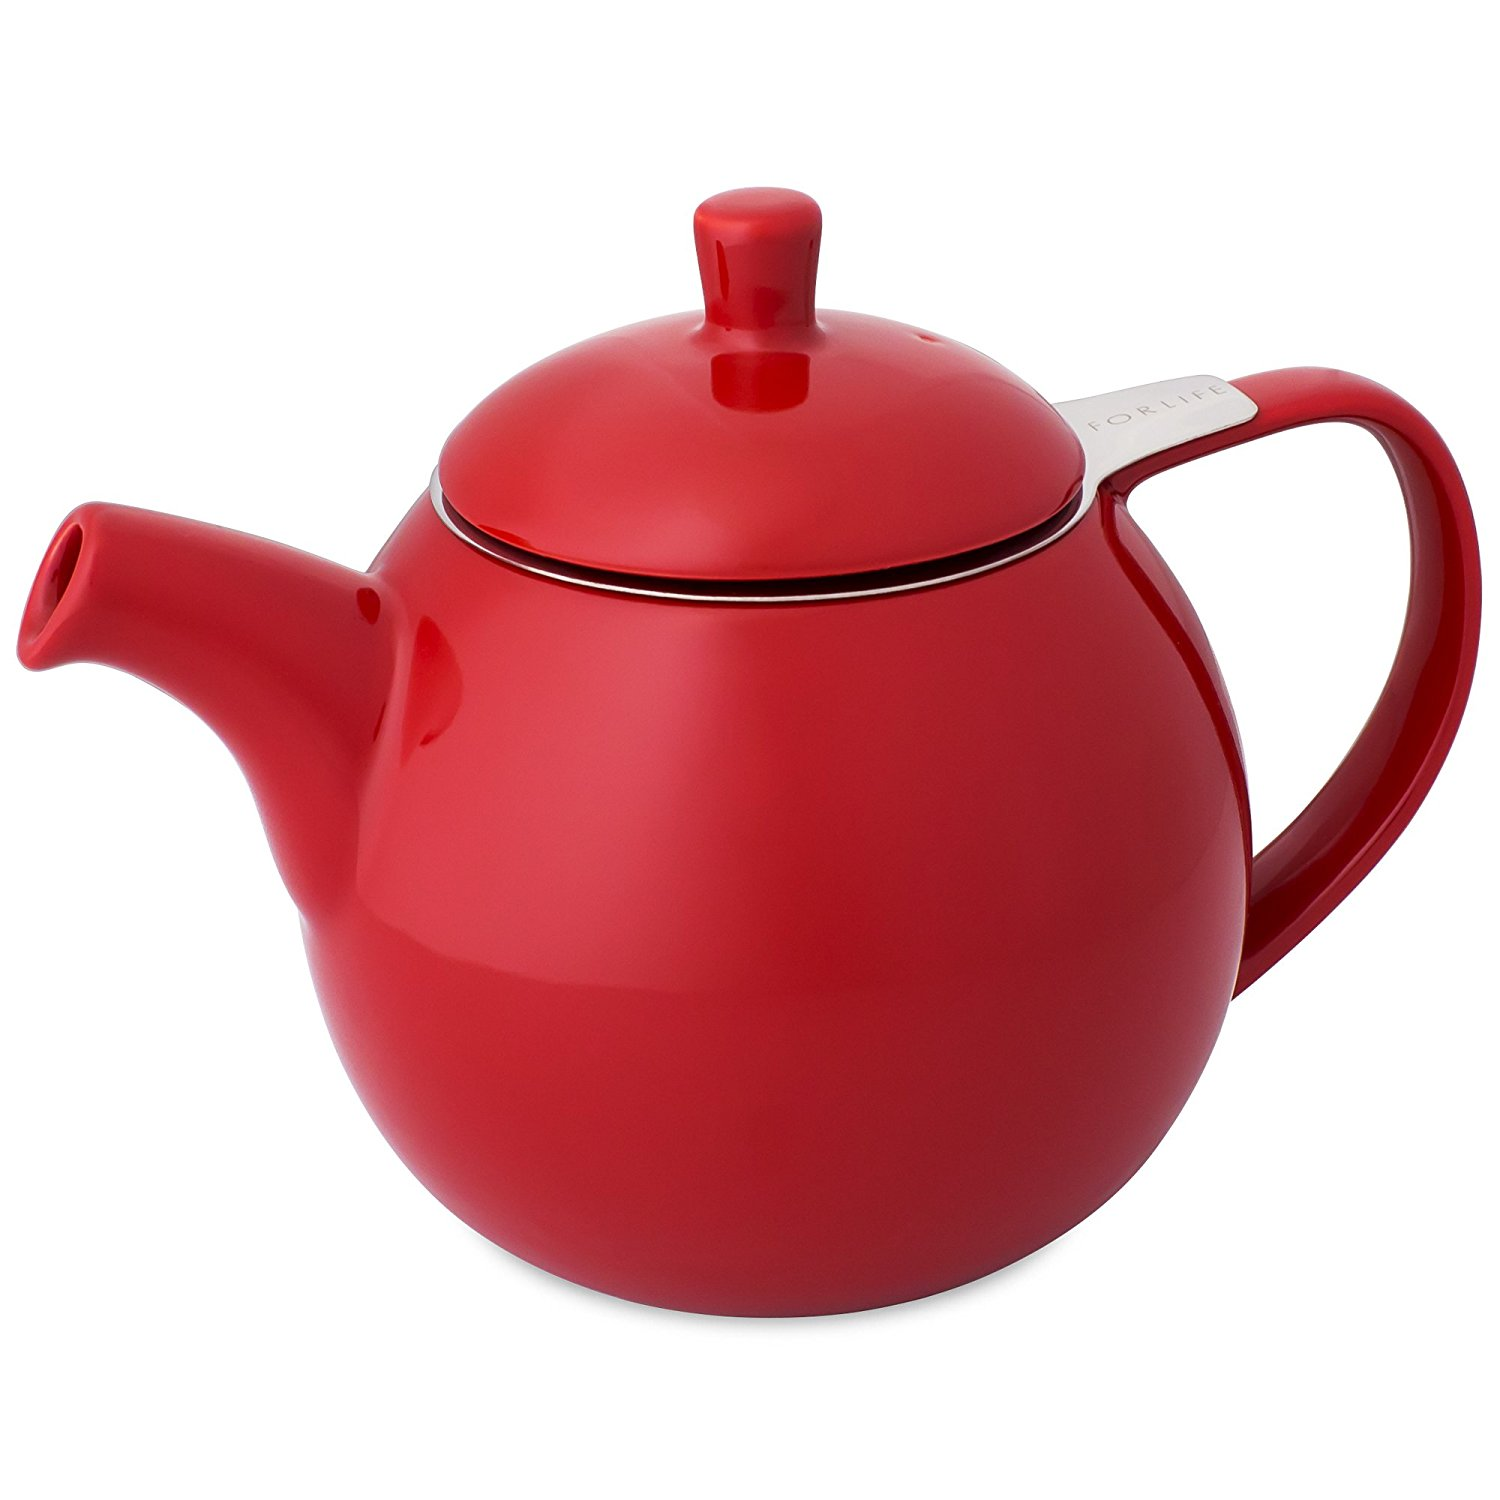 1500x1500 Forlife Curve Teapot With Infuser, 24 Ounce, Red